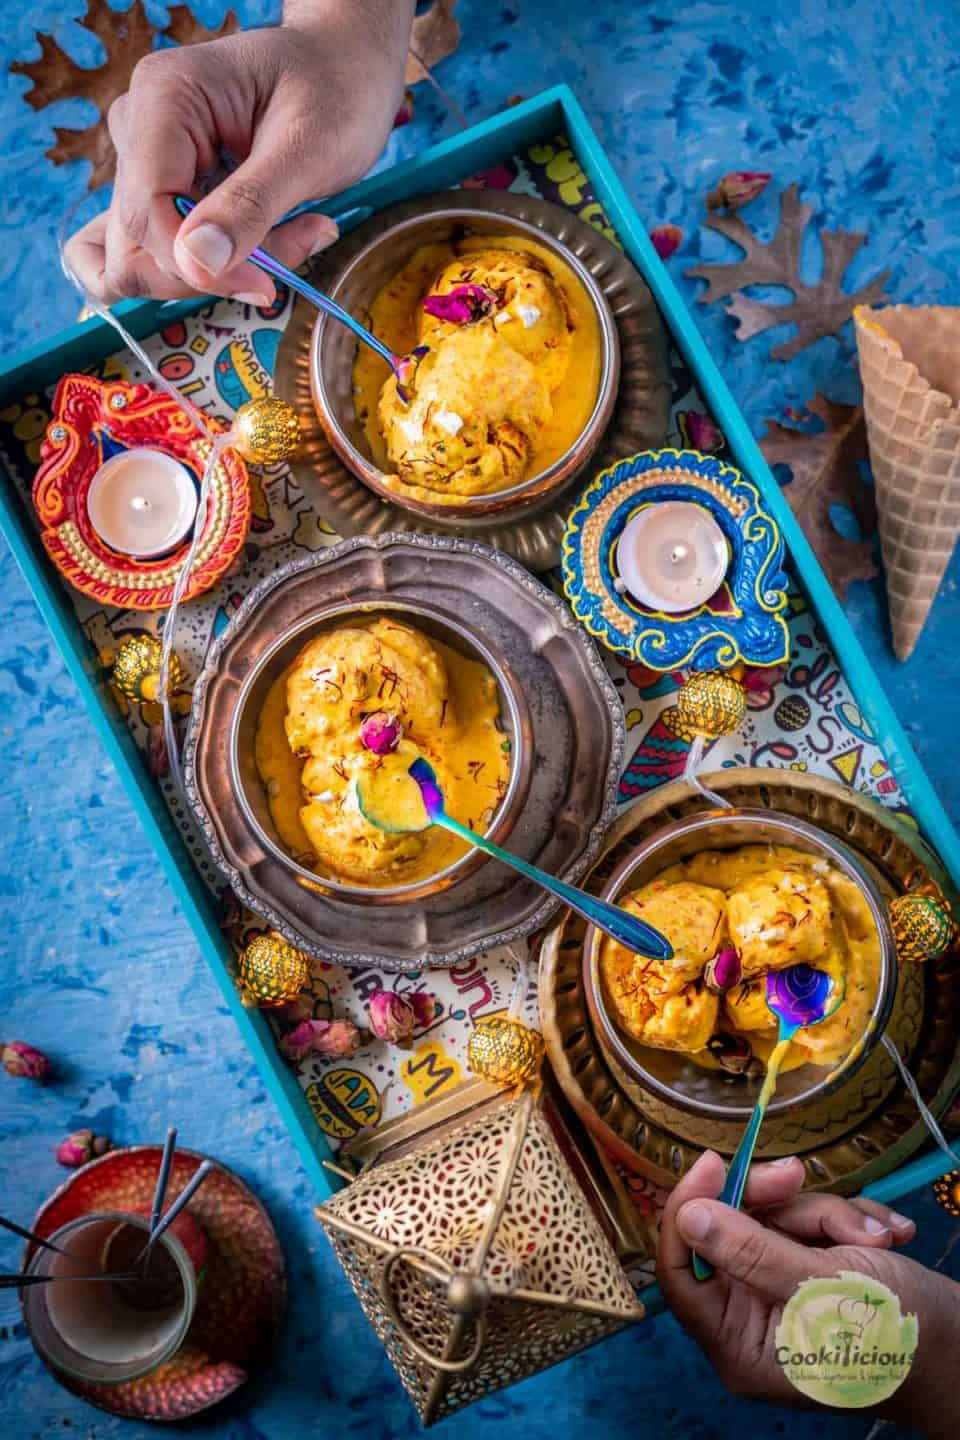 2 hands digging into two bowls of Carrot Halwa Ice Cream